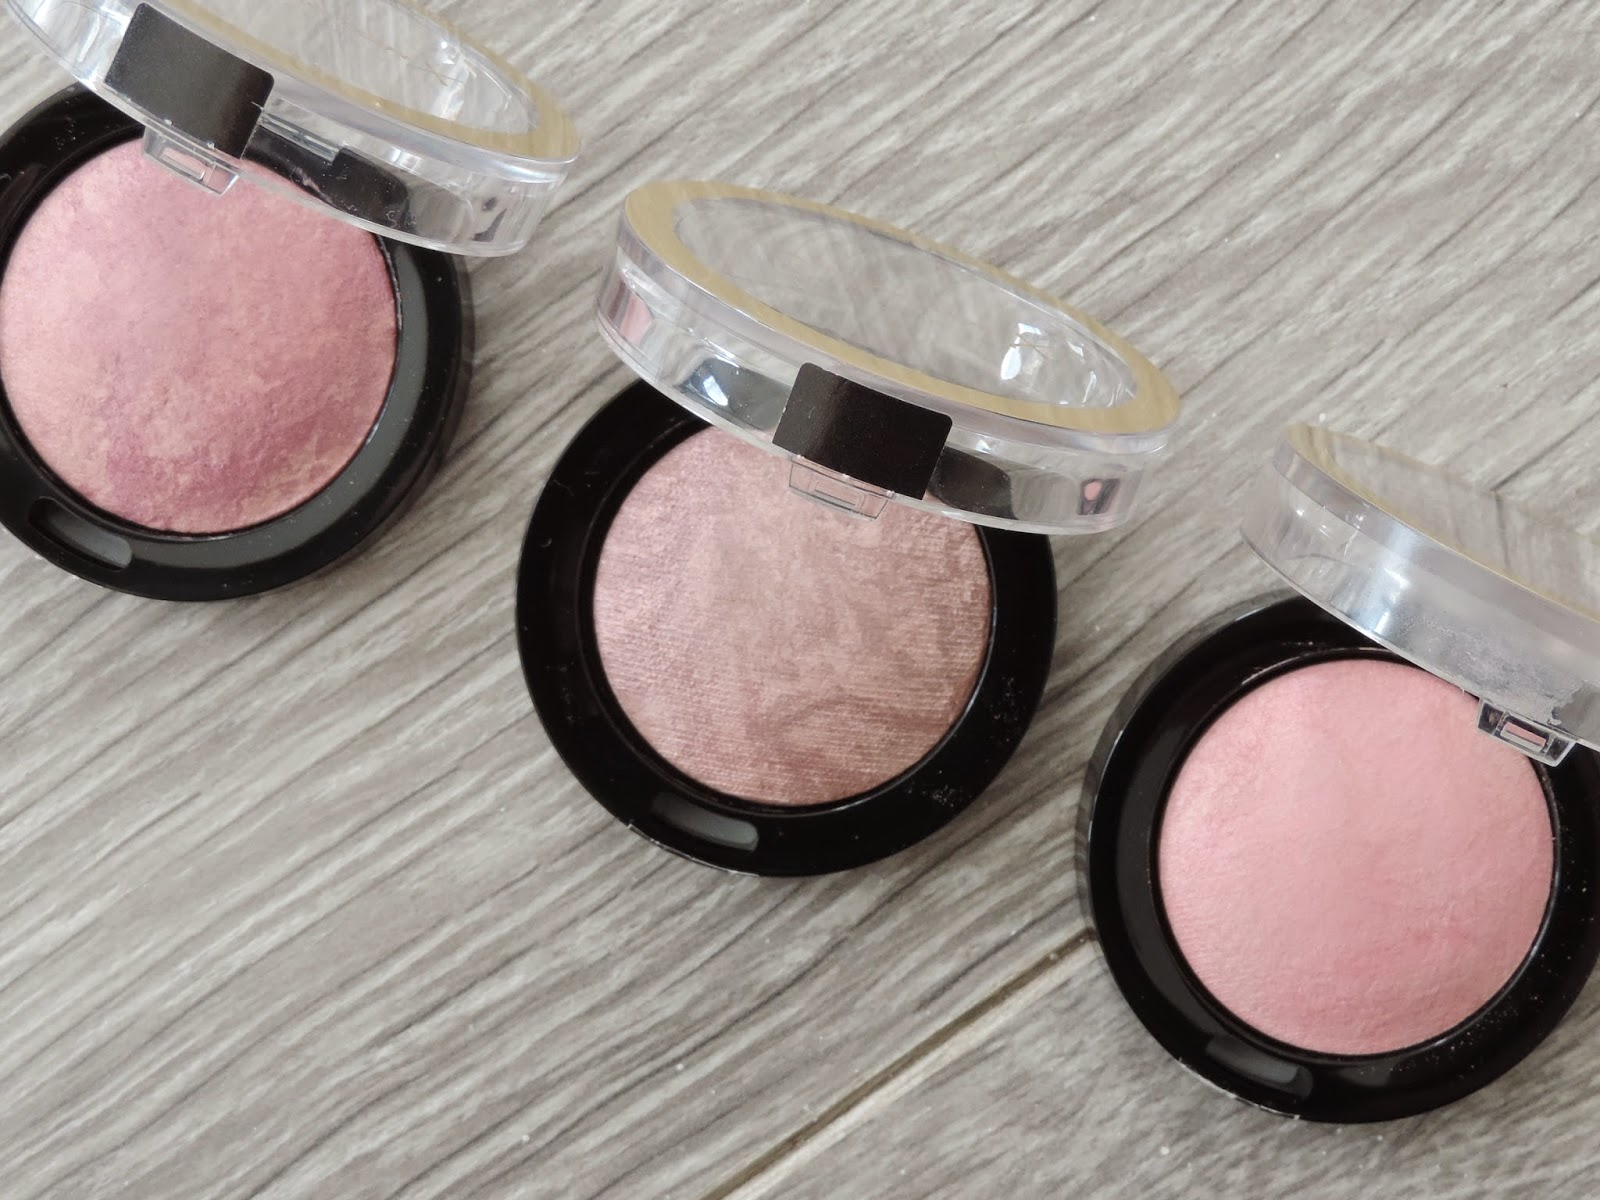 Max Factor Creme Puff Blushes (from left): Seductive Pink, Nude Mauve, Lovely Pink